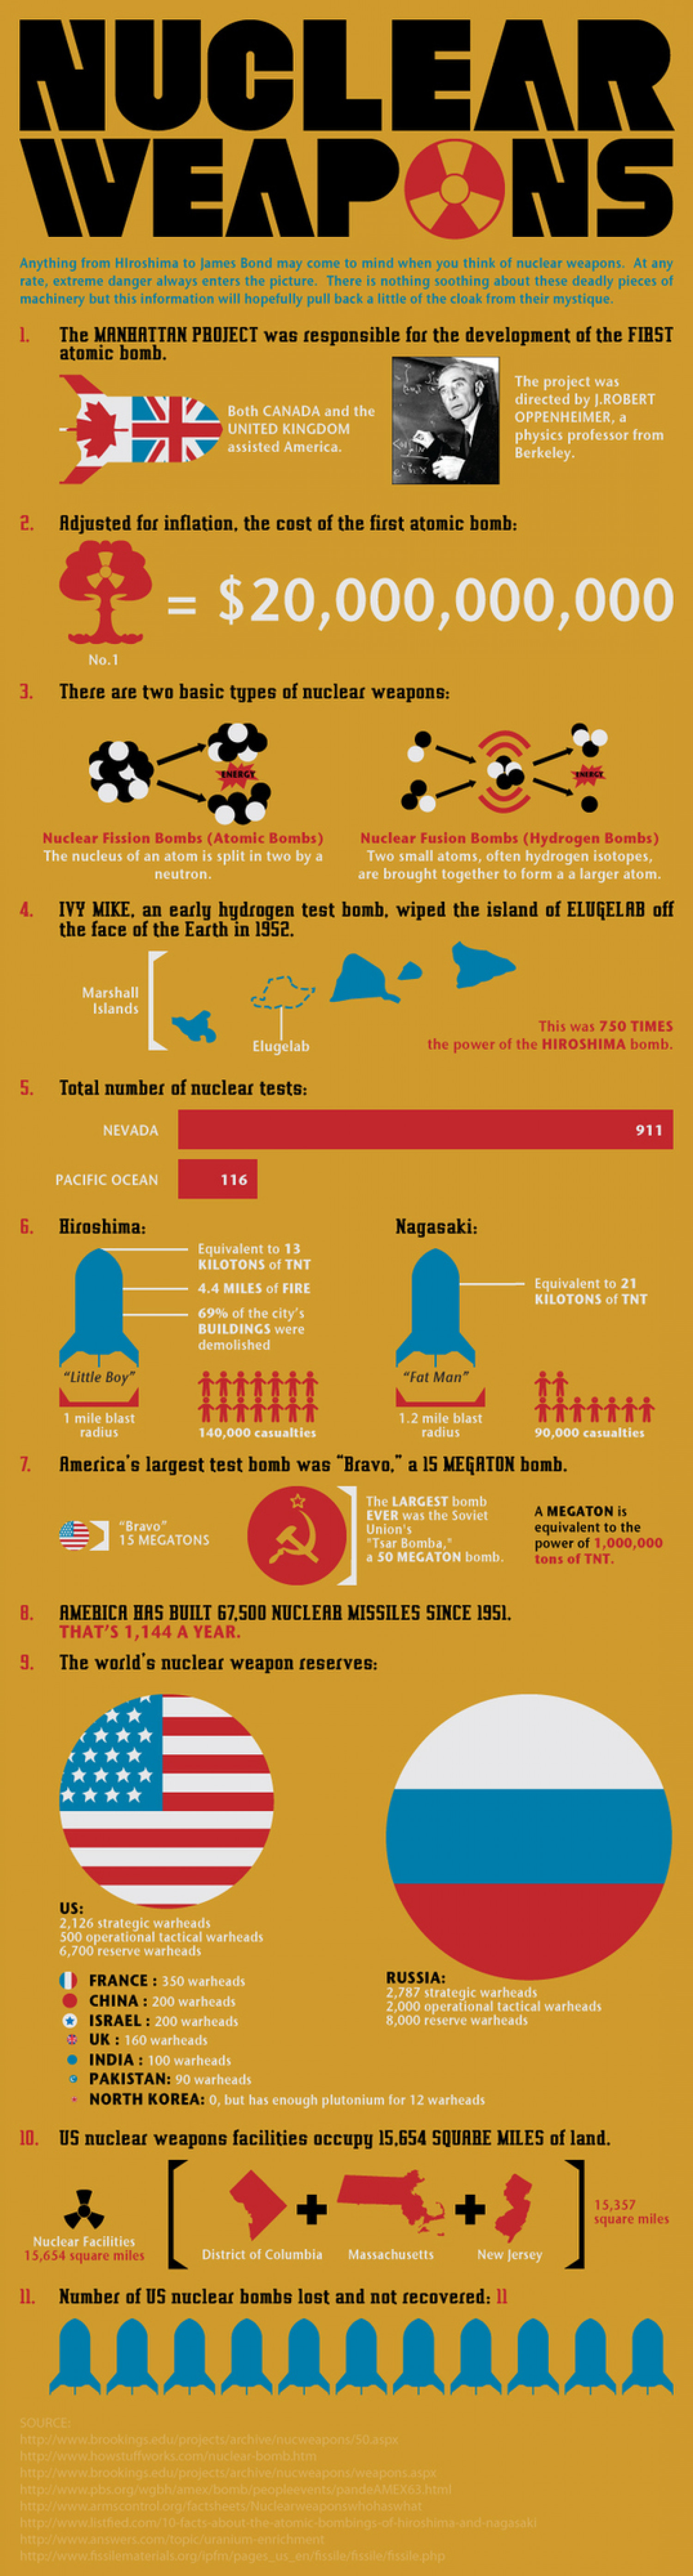 Nuclear Weapons 101 Infographic